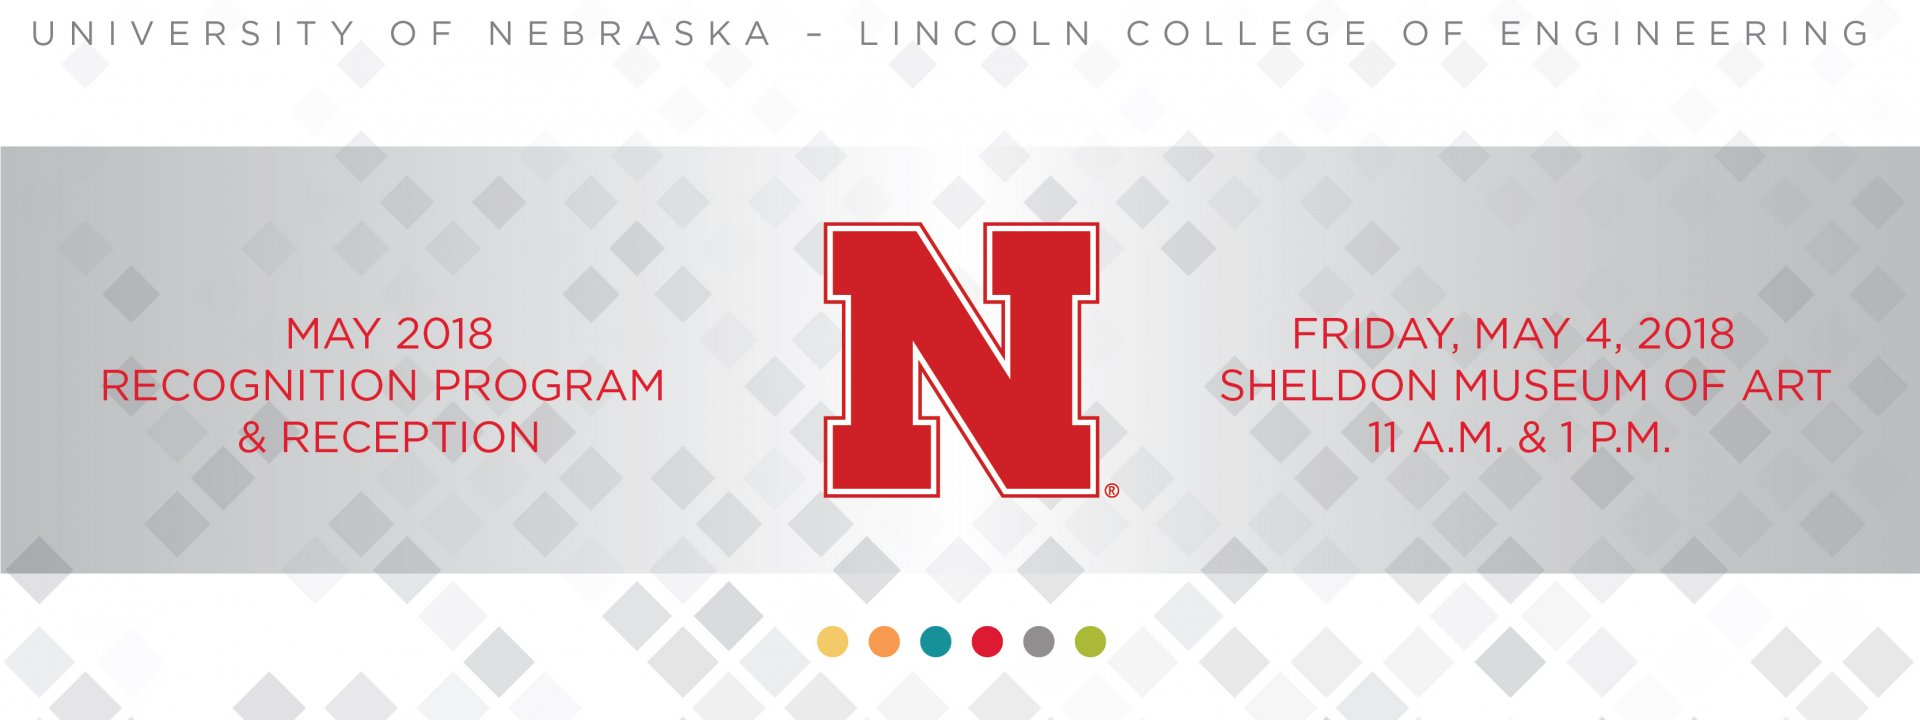 May 2018 University of Nebraska-Lincoln, College of Engineering December 15 Recognition Program and Reception. Friday, May 4, 2018. Sheldon Museum of Art. 11 a.m. and 1 p.m.